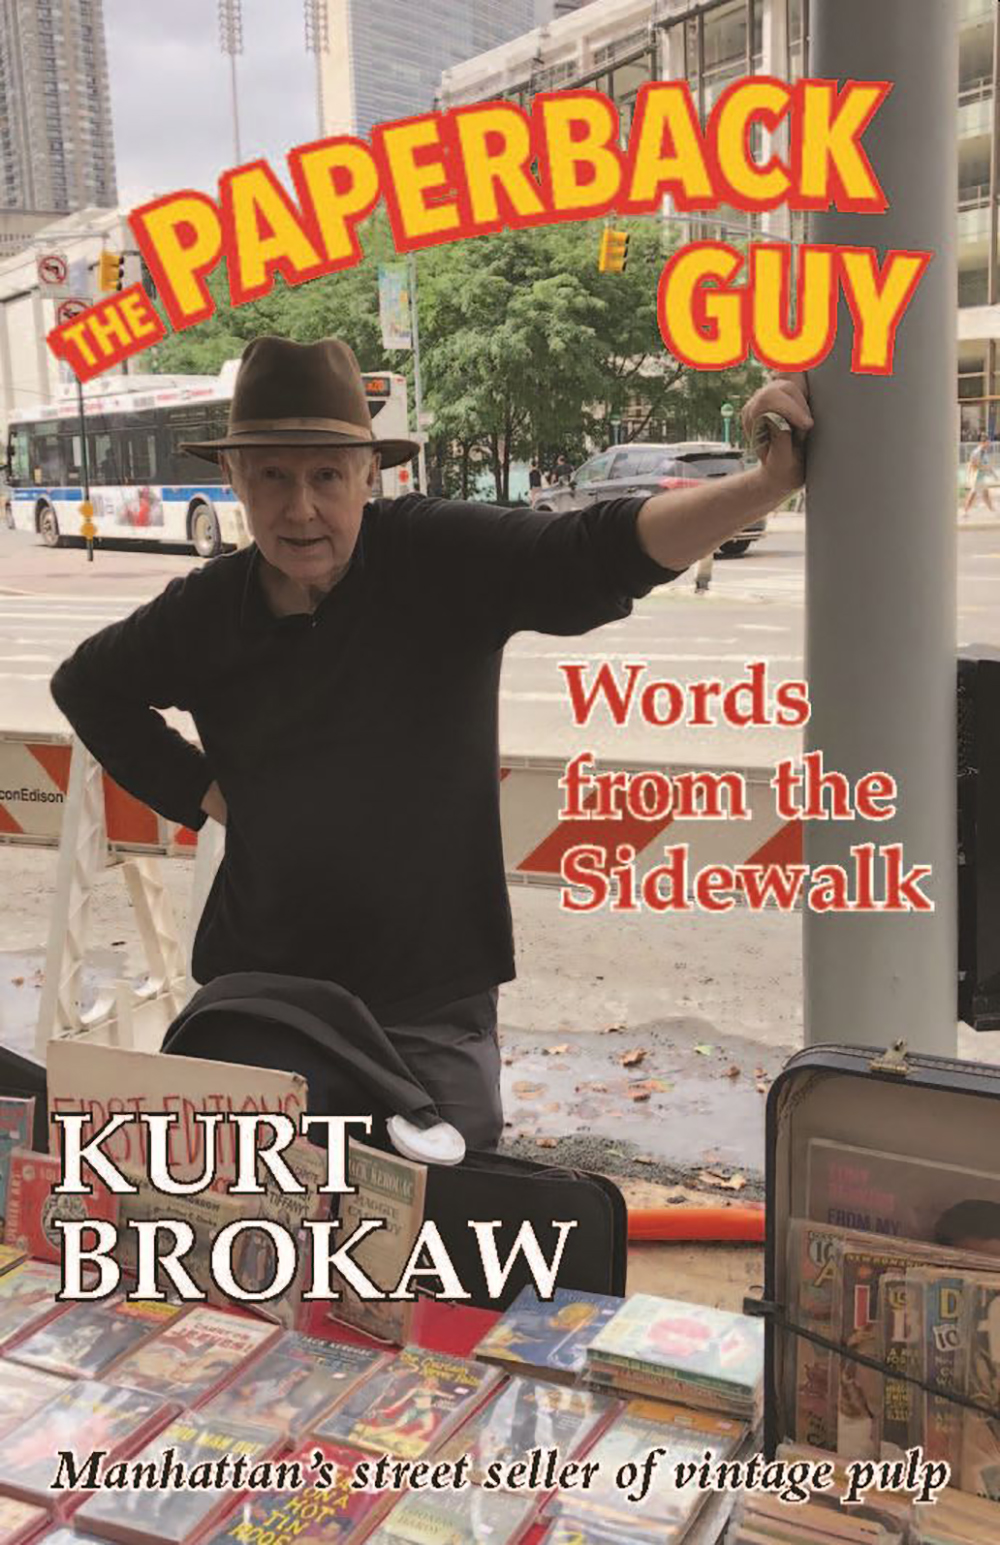 The Paperback Guy: Words from the Sidewalk